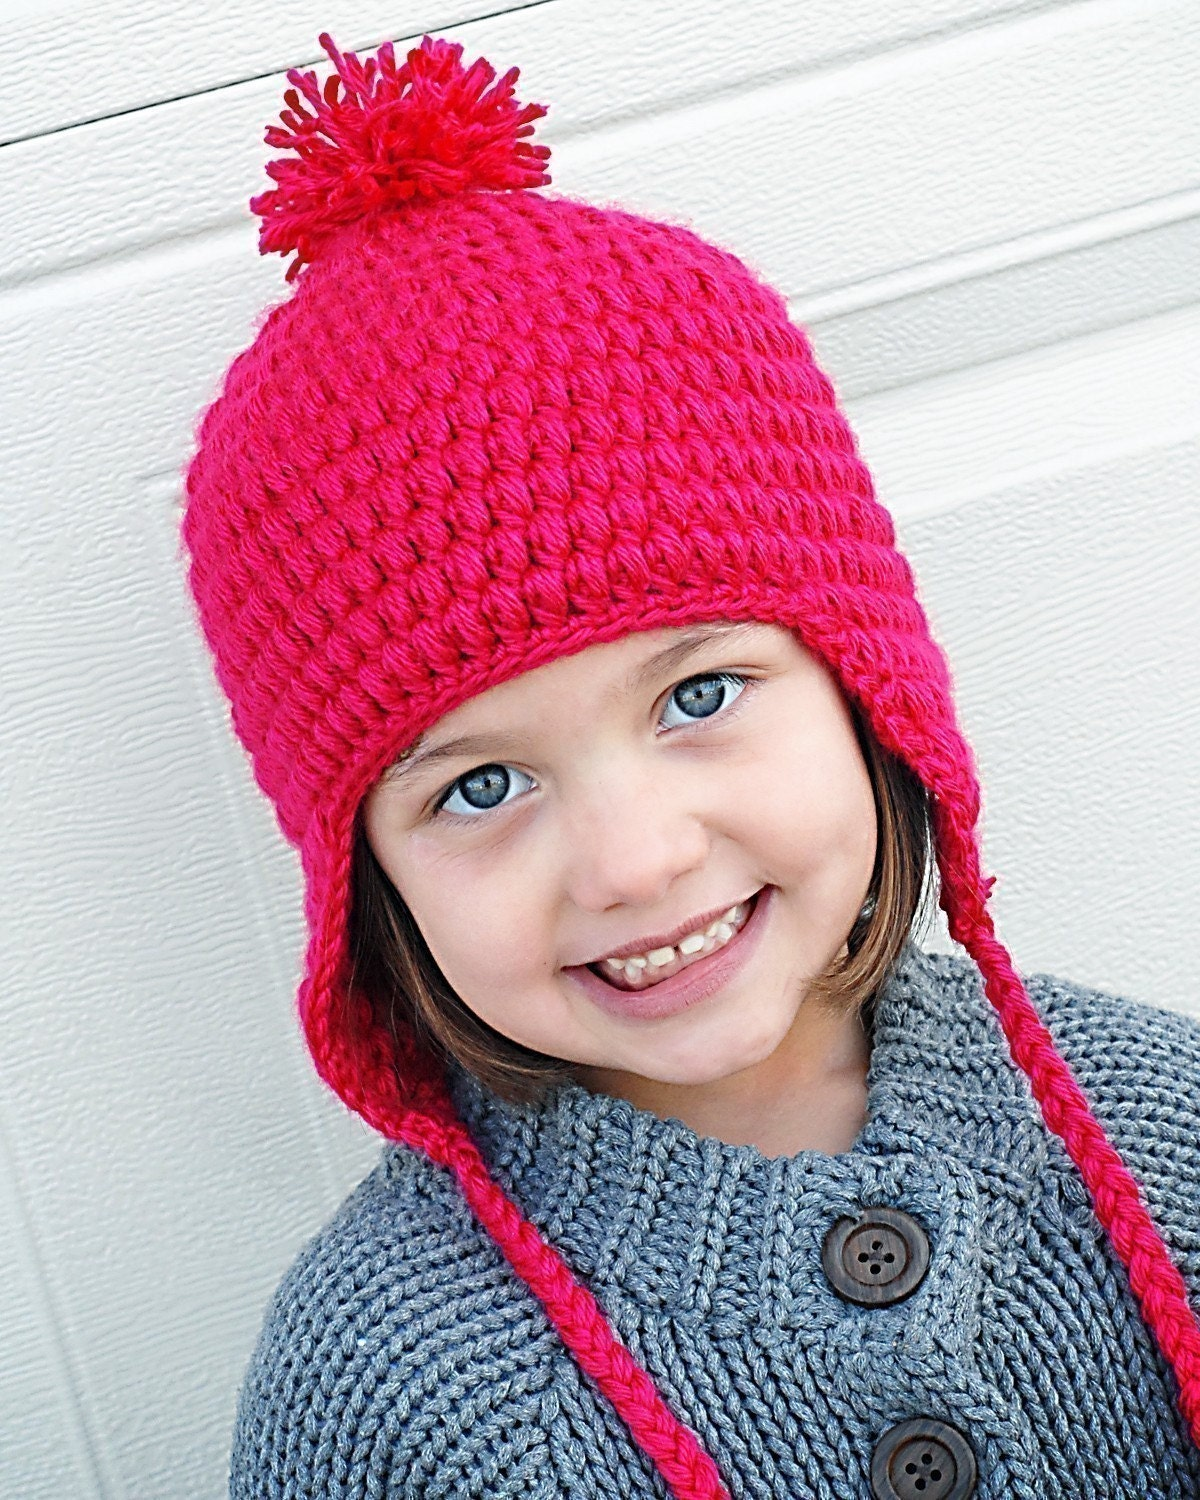 Free Crochet Pattern Toddler Earflap Hat : Puffy Earflap Hat Crochet Pattern Instant by adrienneengar ...